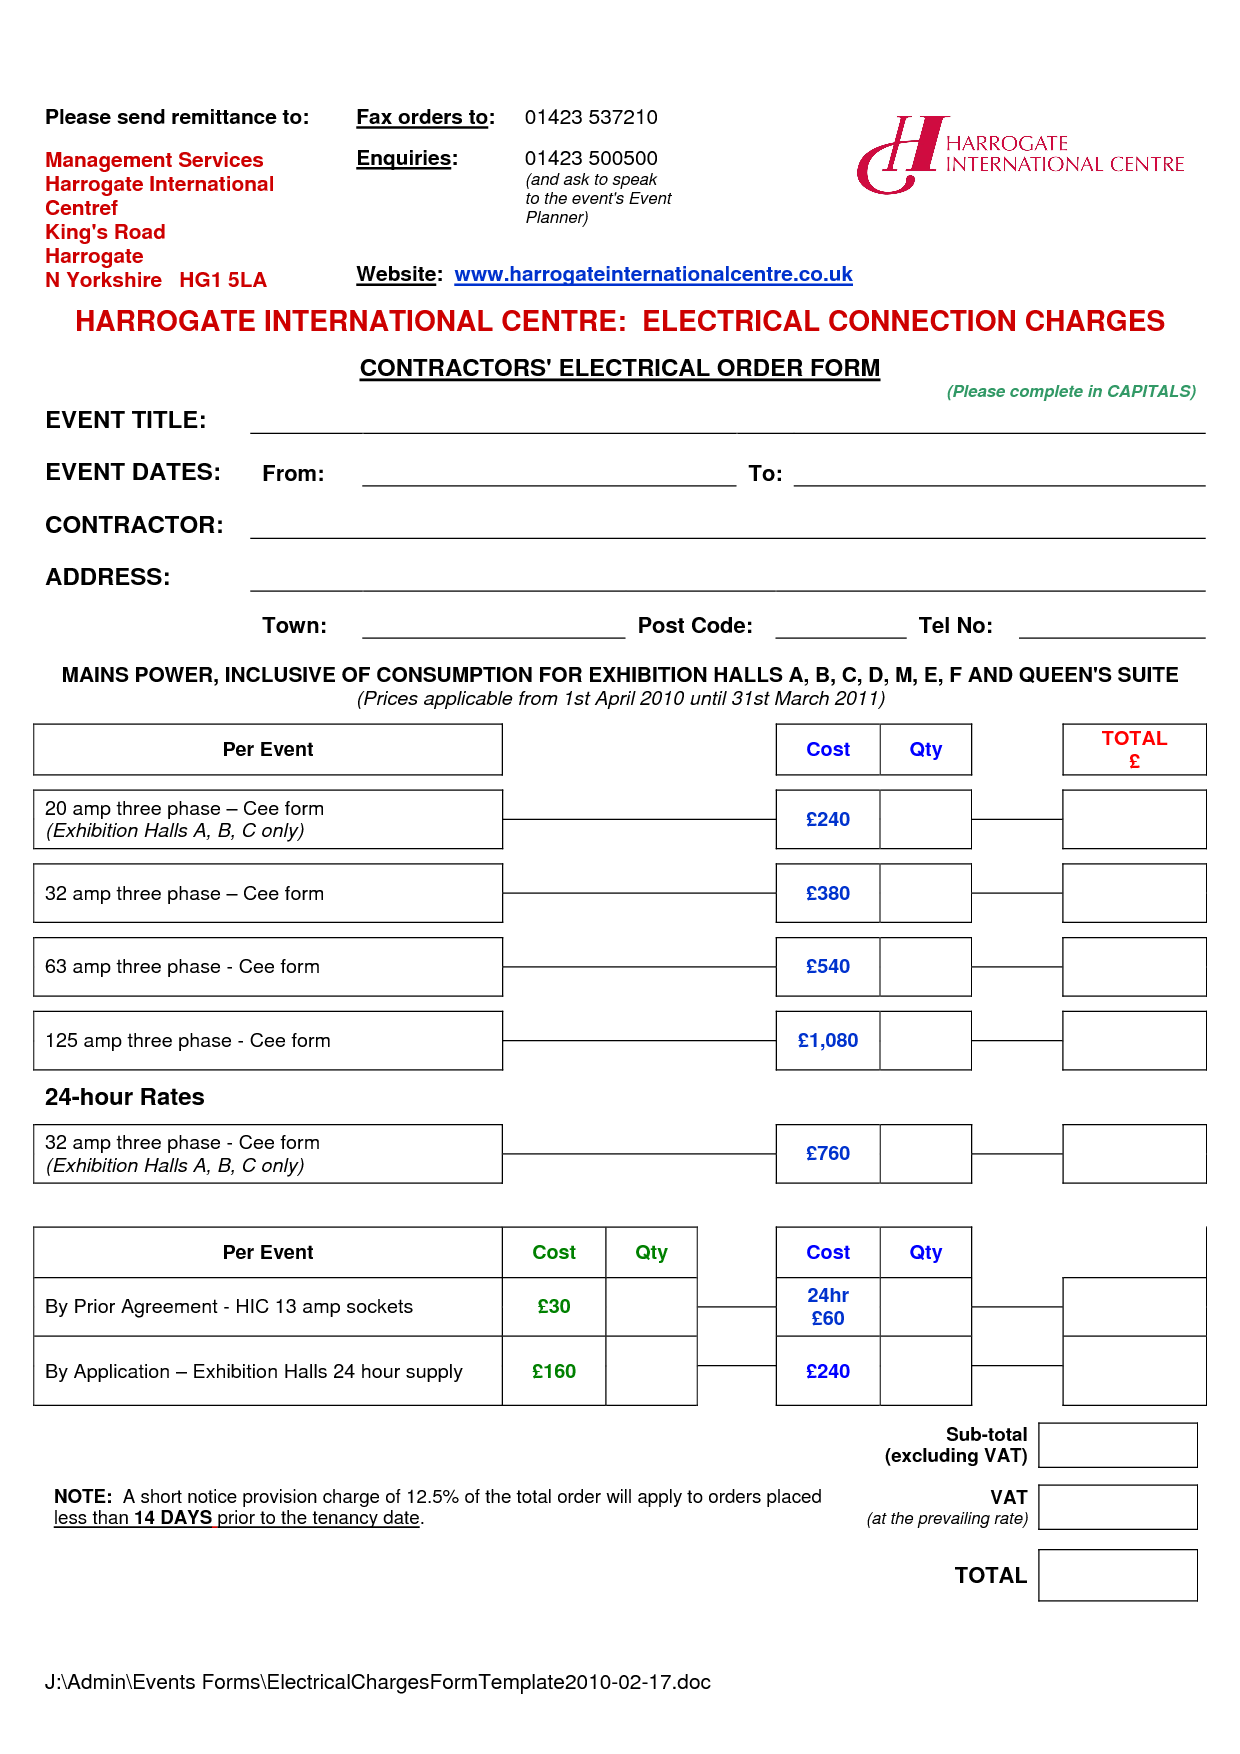 Electrical Invoice Template Images Download Electrical - Contractor invoice template free download